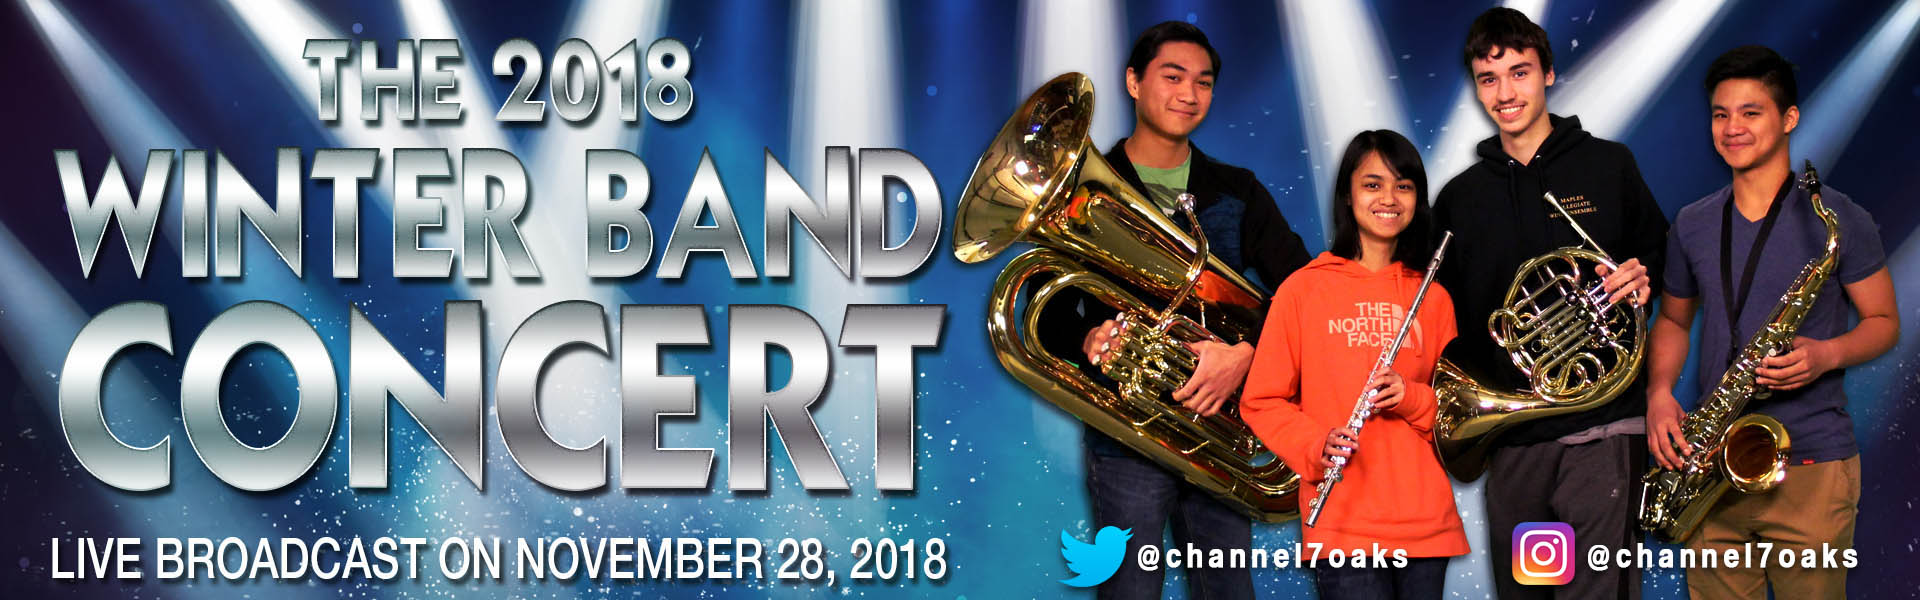 2018 Winter Band Concert